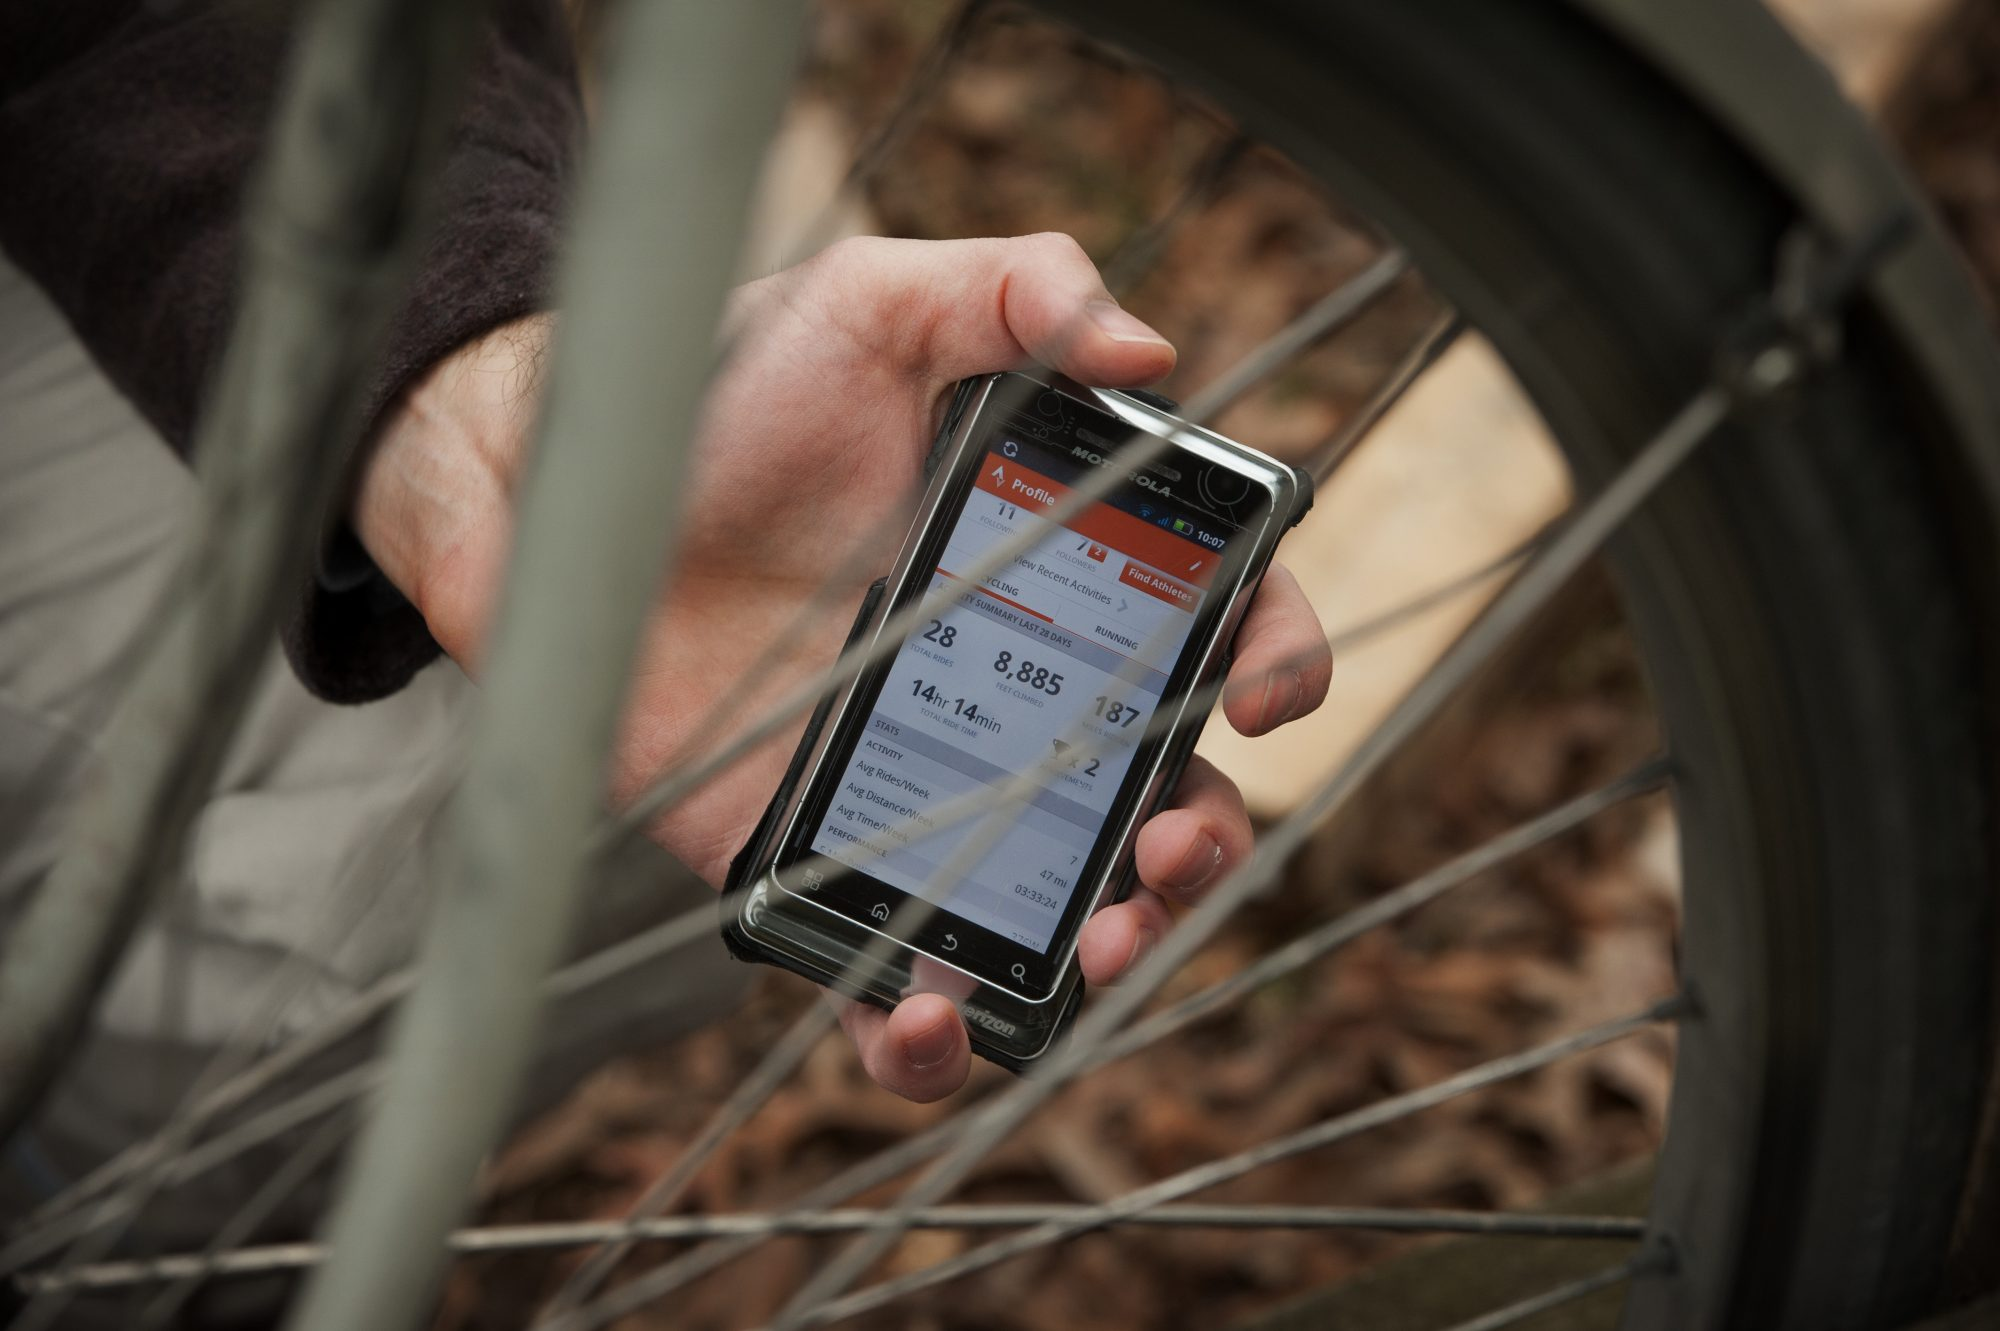 strava fitness app on a phone